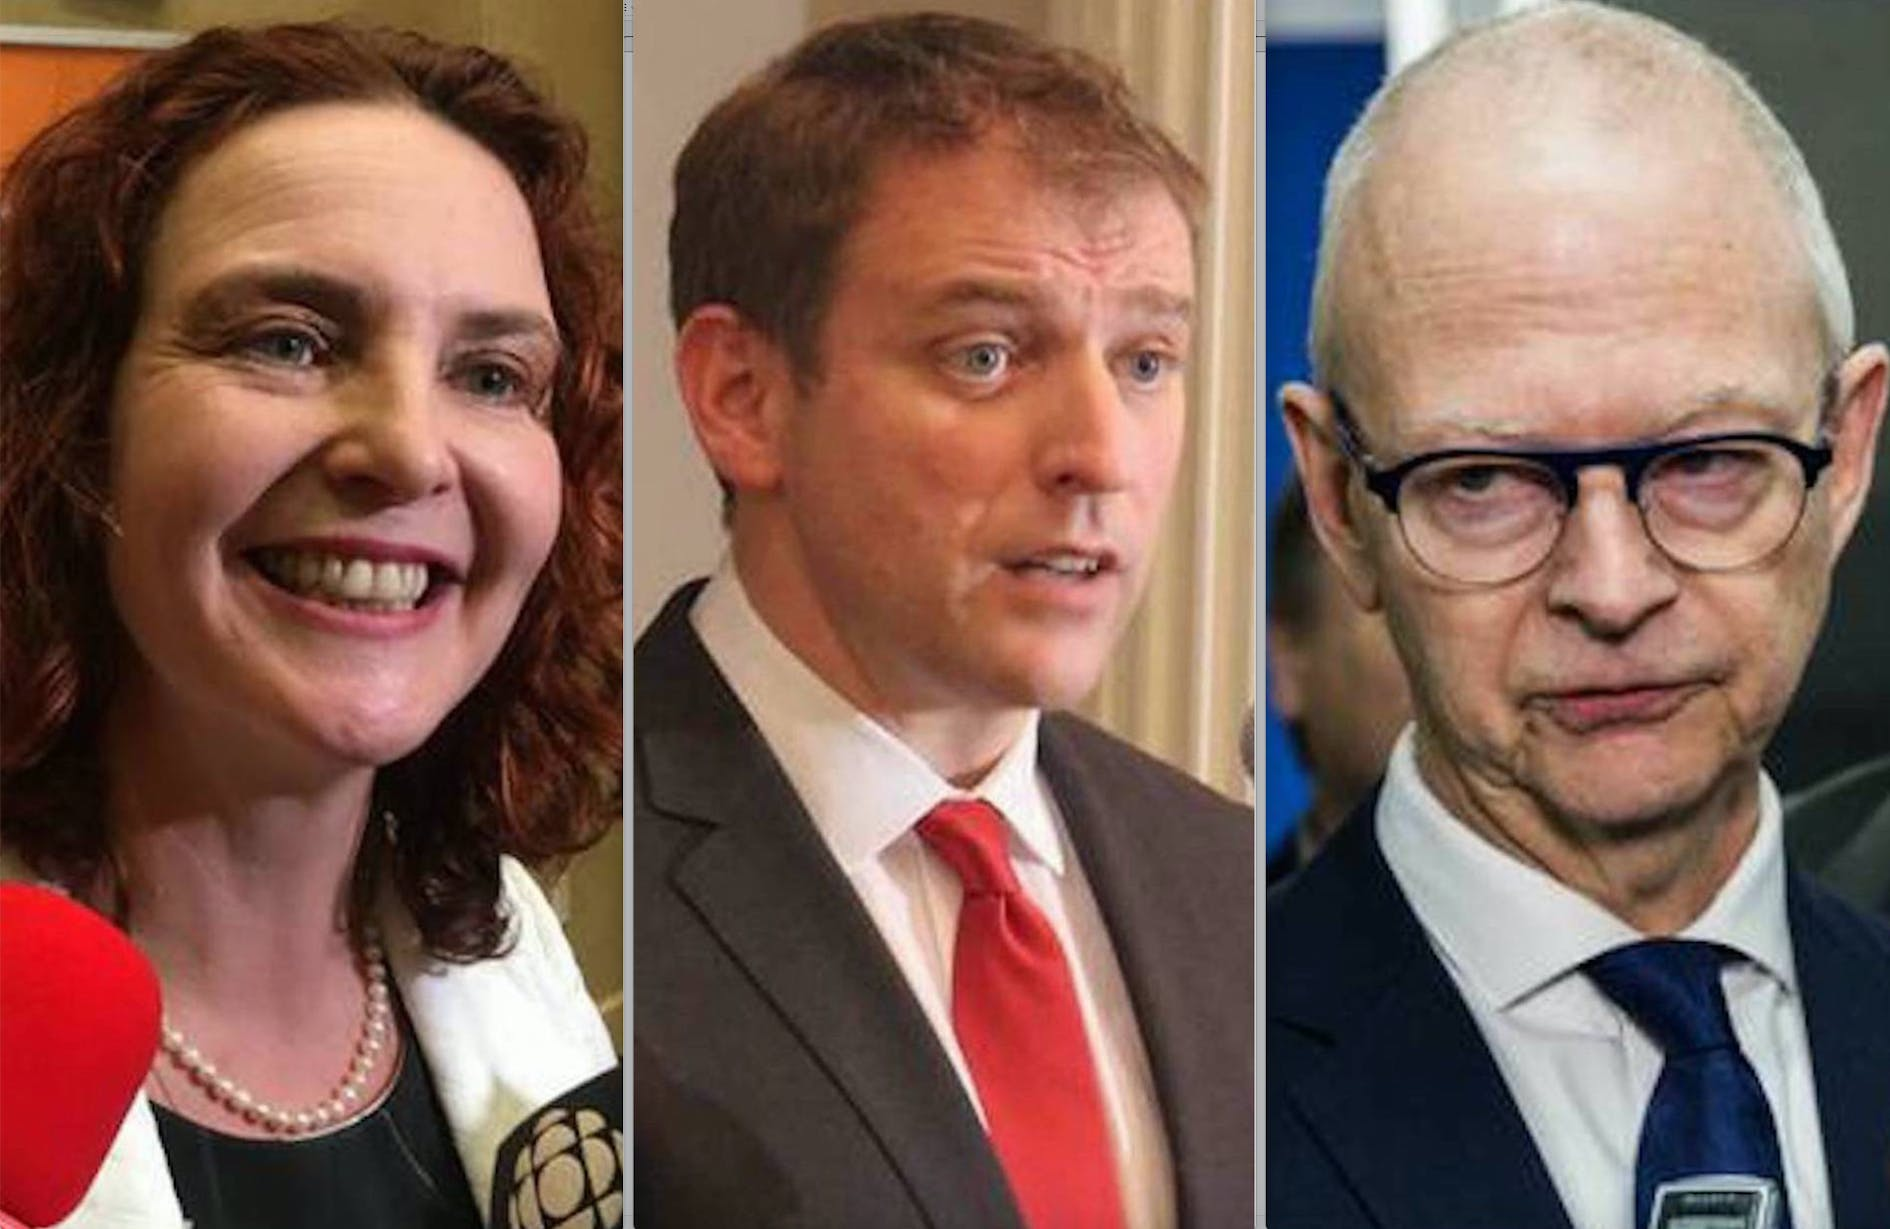 The NDP's Allison Coffin (left) and PC's Ches Crosbie (right) are campaigning in St. John's today, while Liberal leader Andrew Furey began Saturday on the Burin Peninsula. — File photos